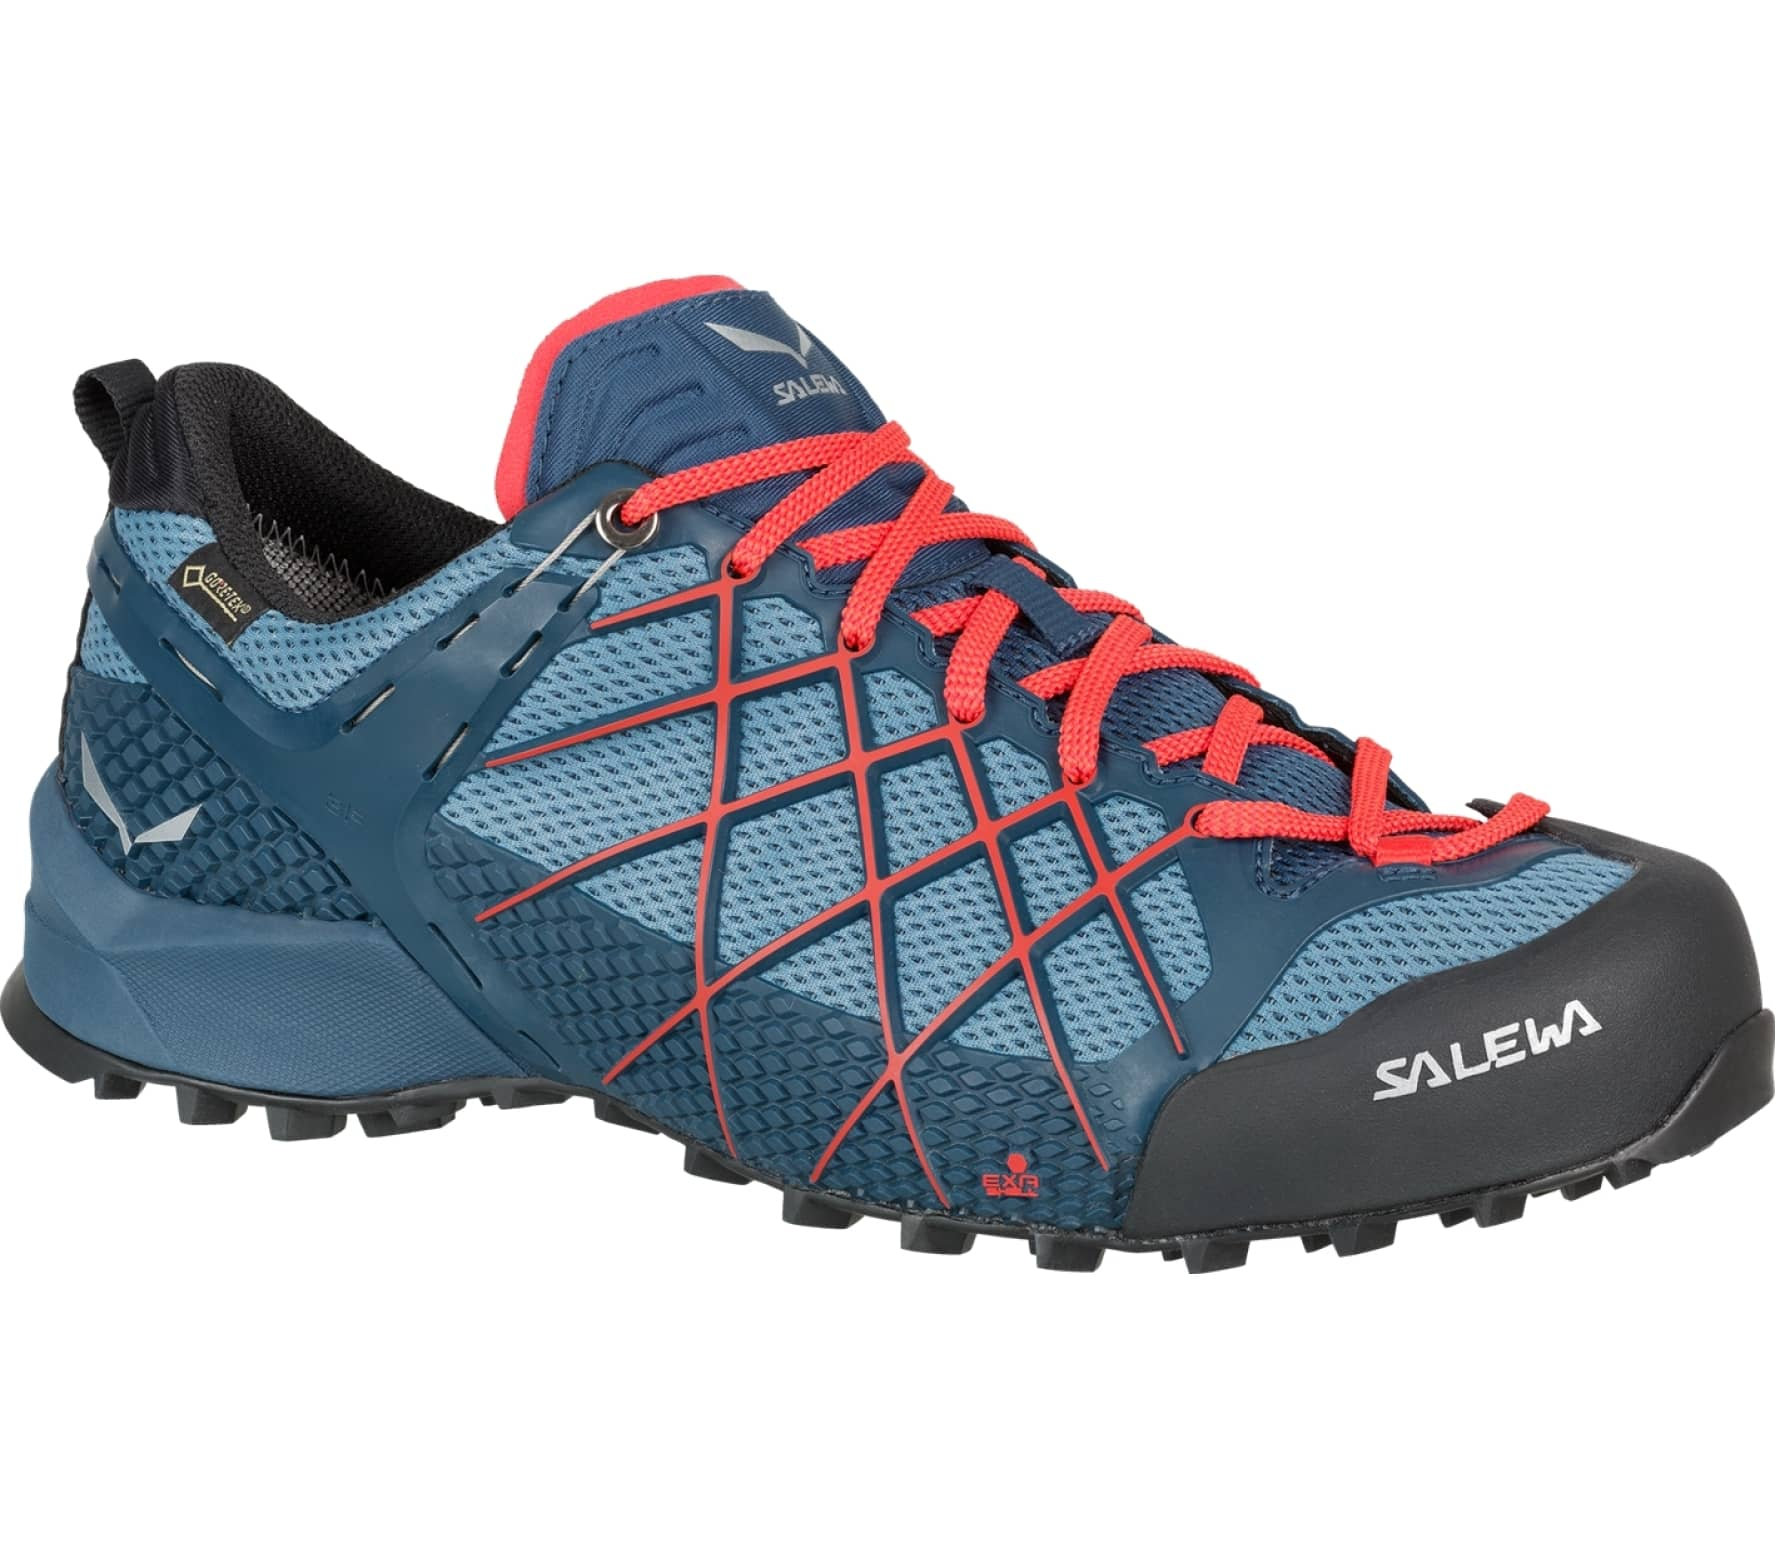 Salewa - Wildfire GTX men's Approach shoes (blue/orange)